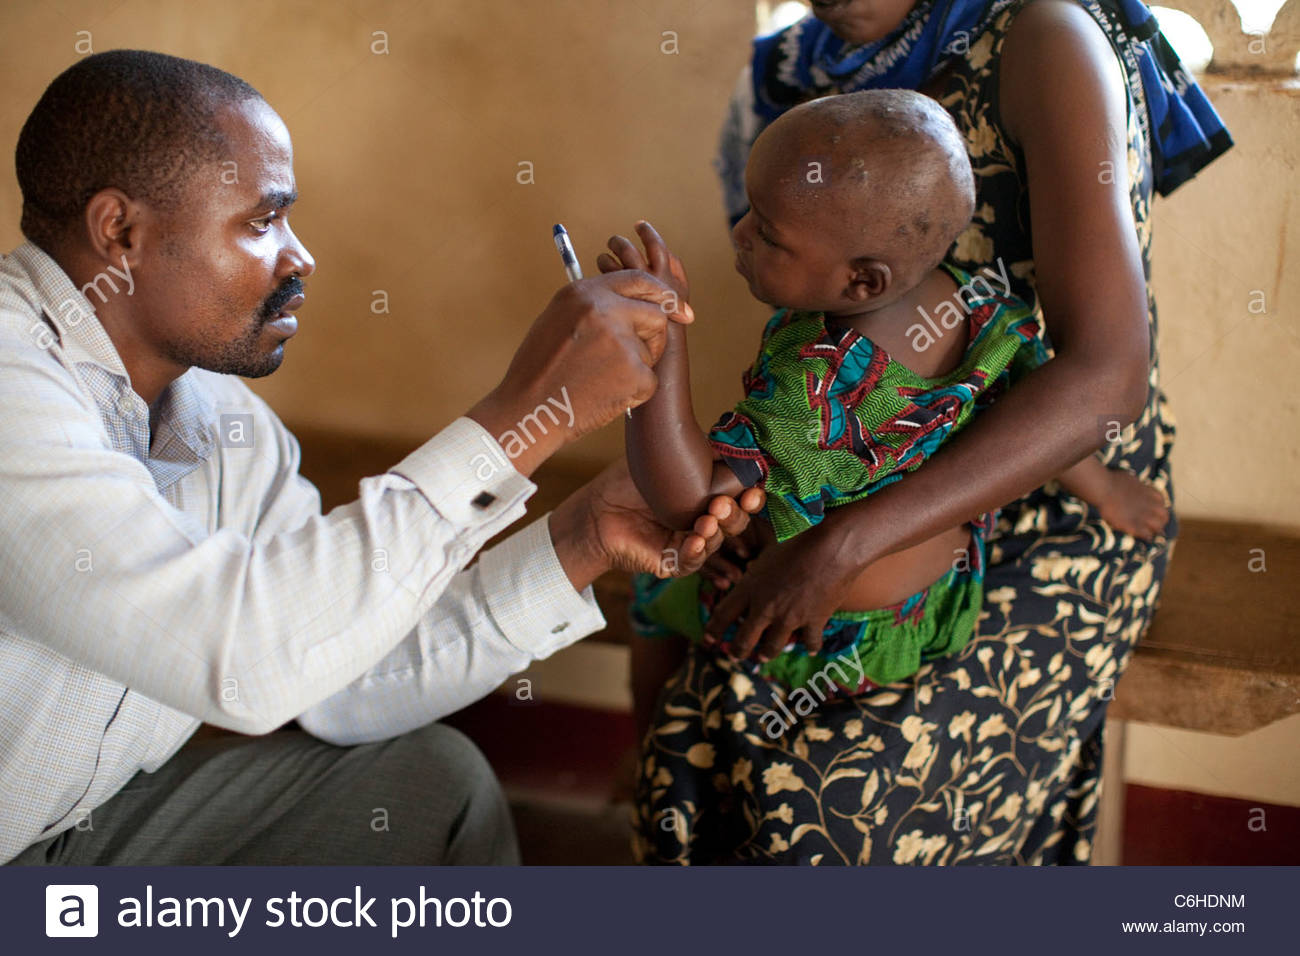 Young child receiving a medical exam - Stock Image